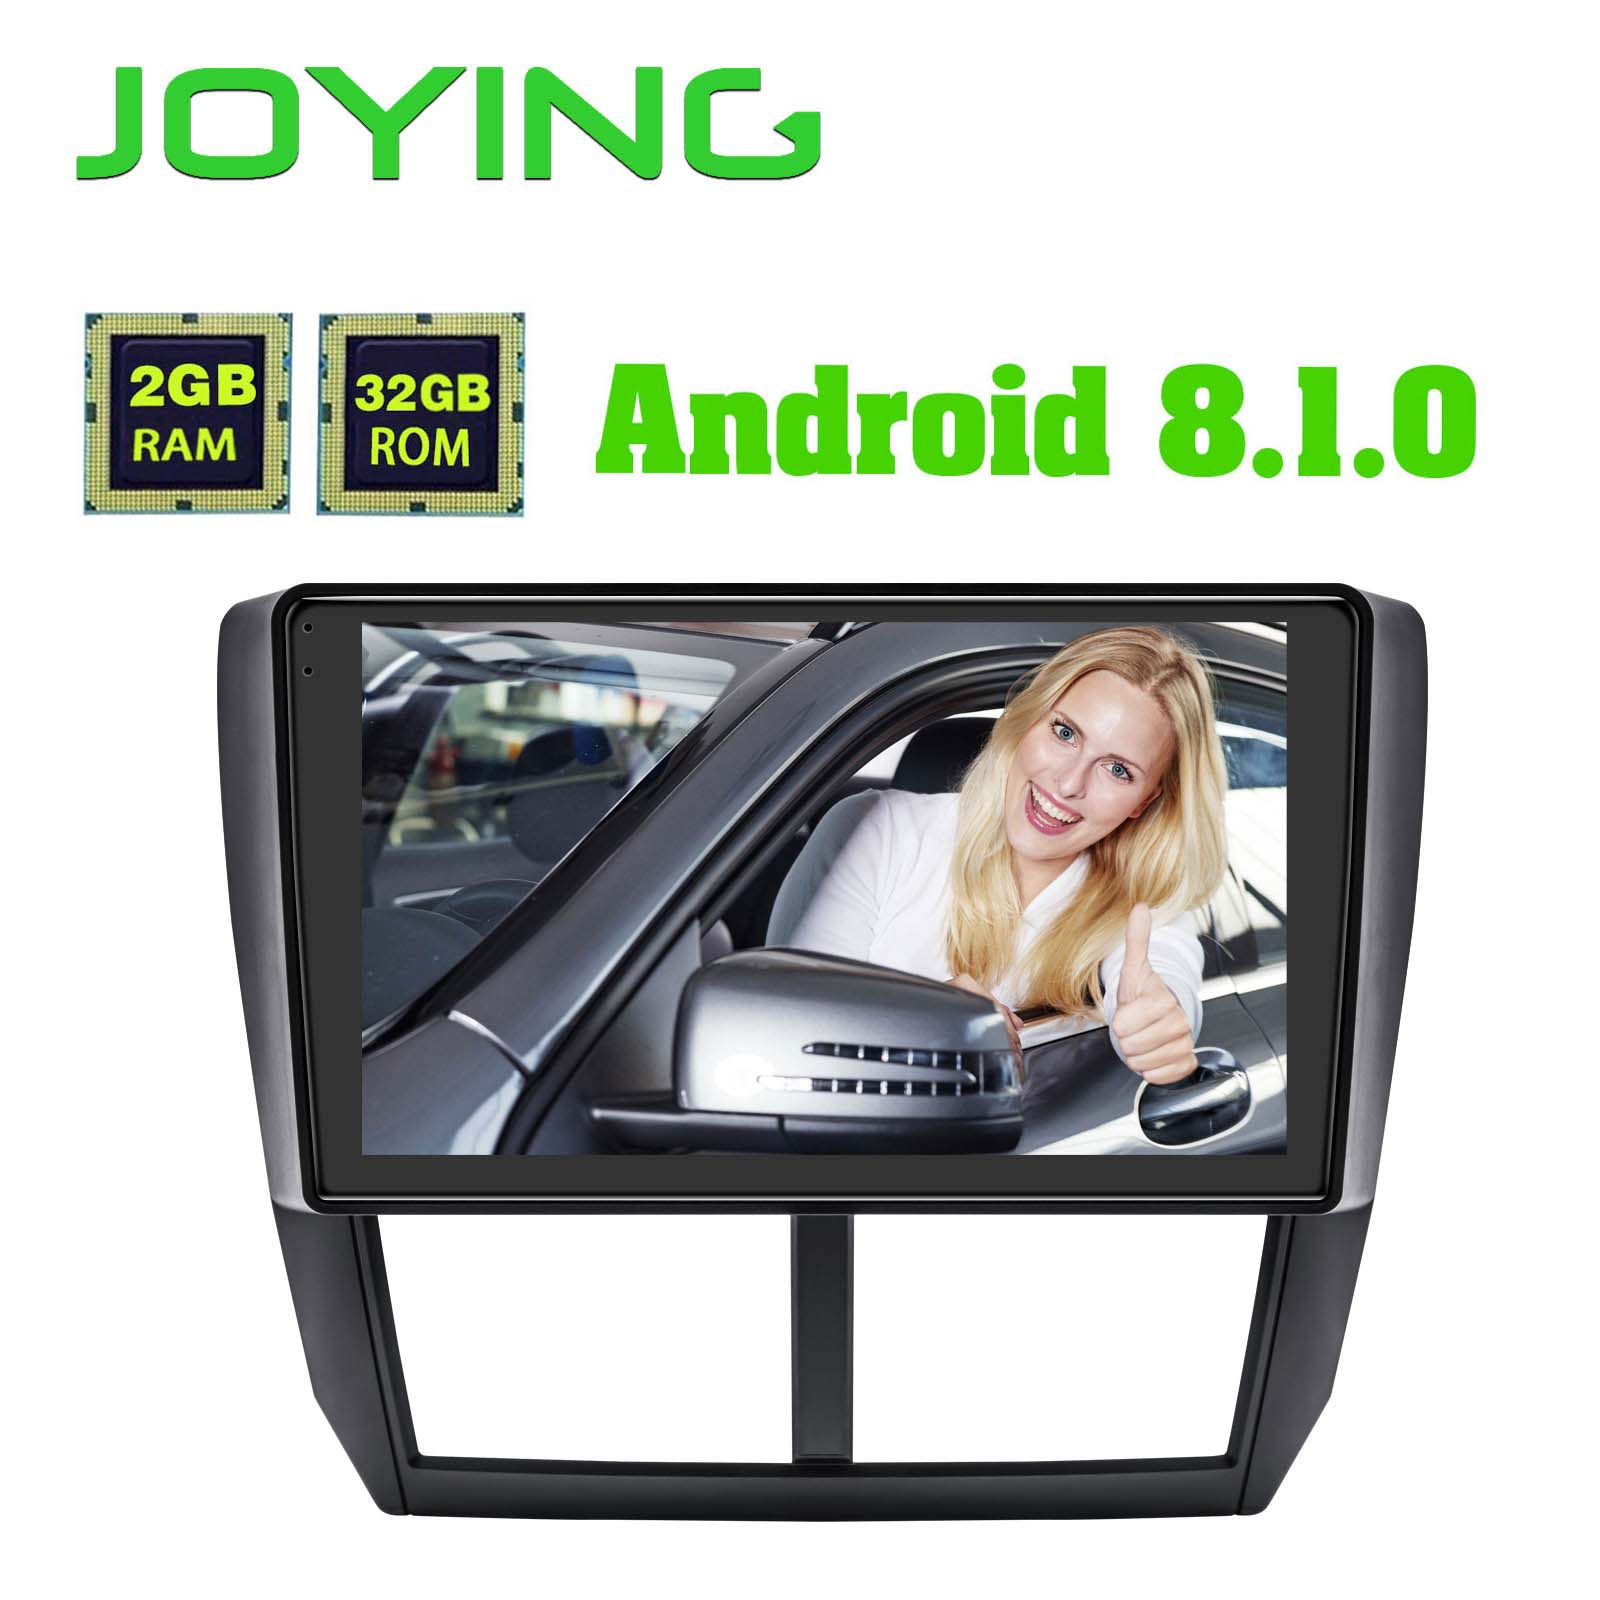 JOYING HD 9 Screen Multimedia Car DVD Player 2GB RAM Octa core Android 8 1 GPS